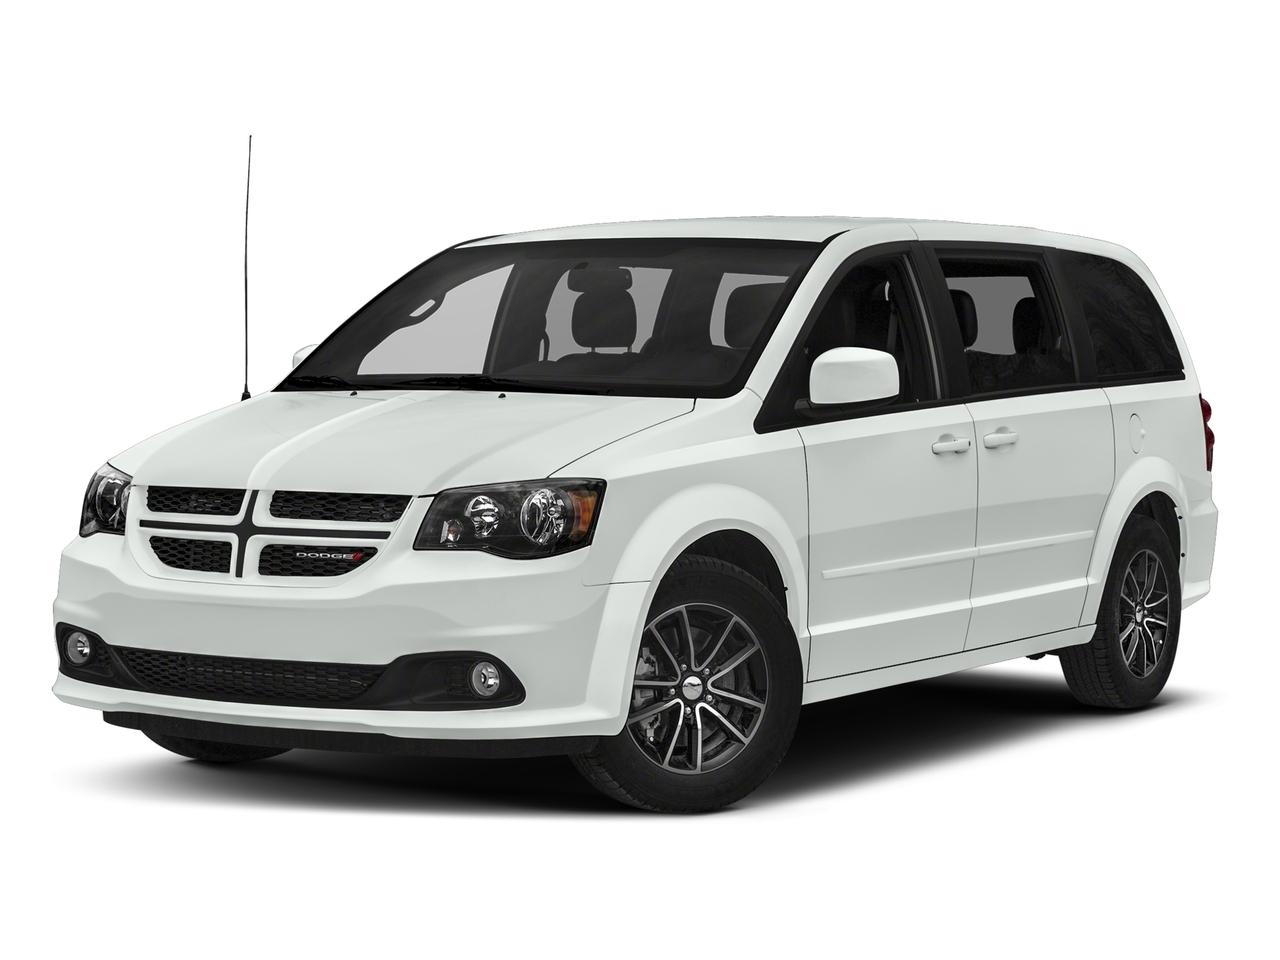 2018 Dodge Grand Caravan Vehicle Photo in Tucson, AZ 85711